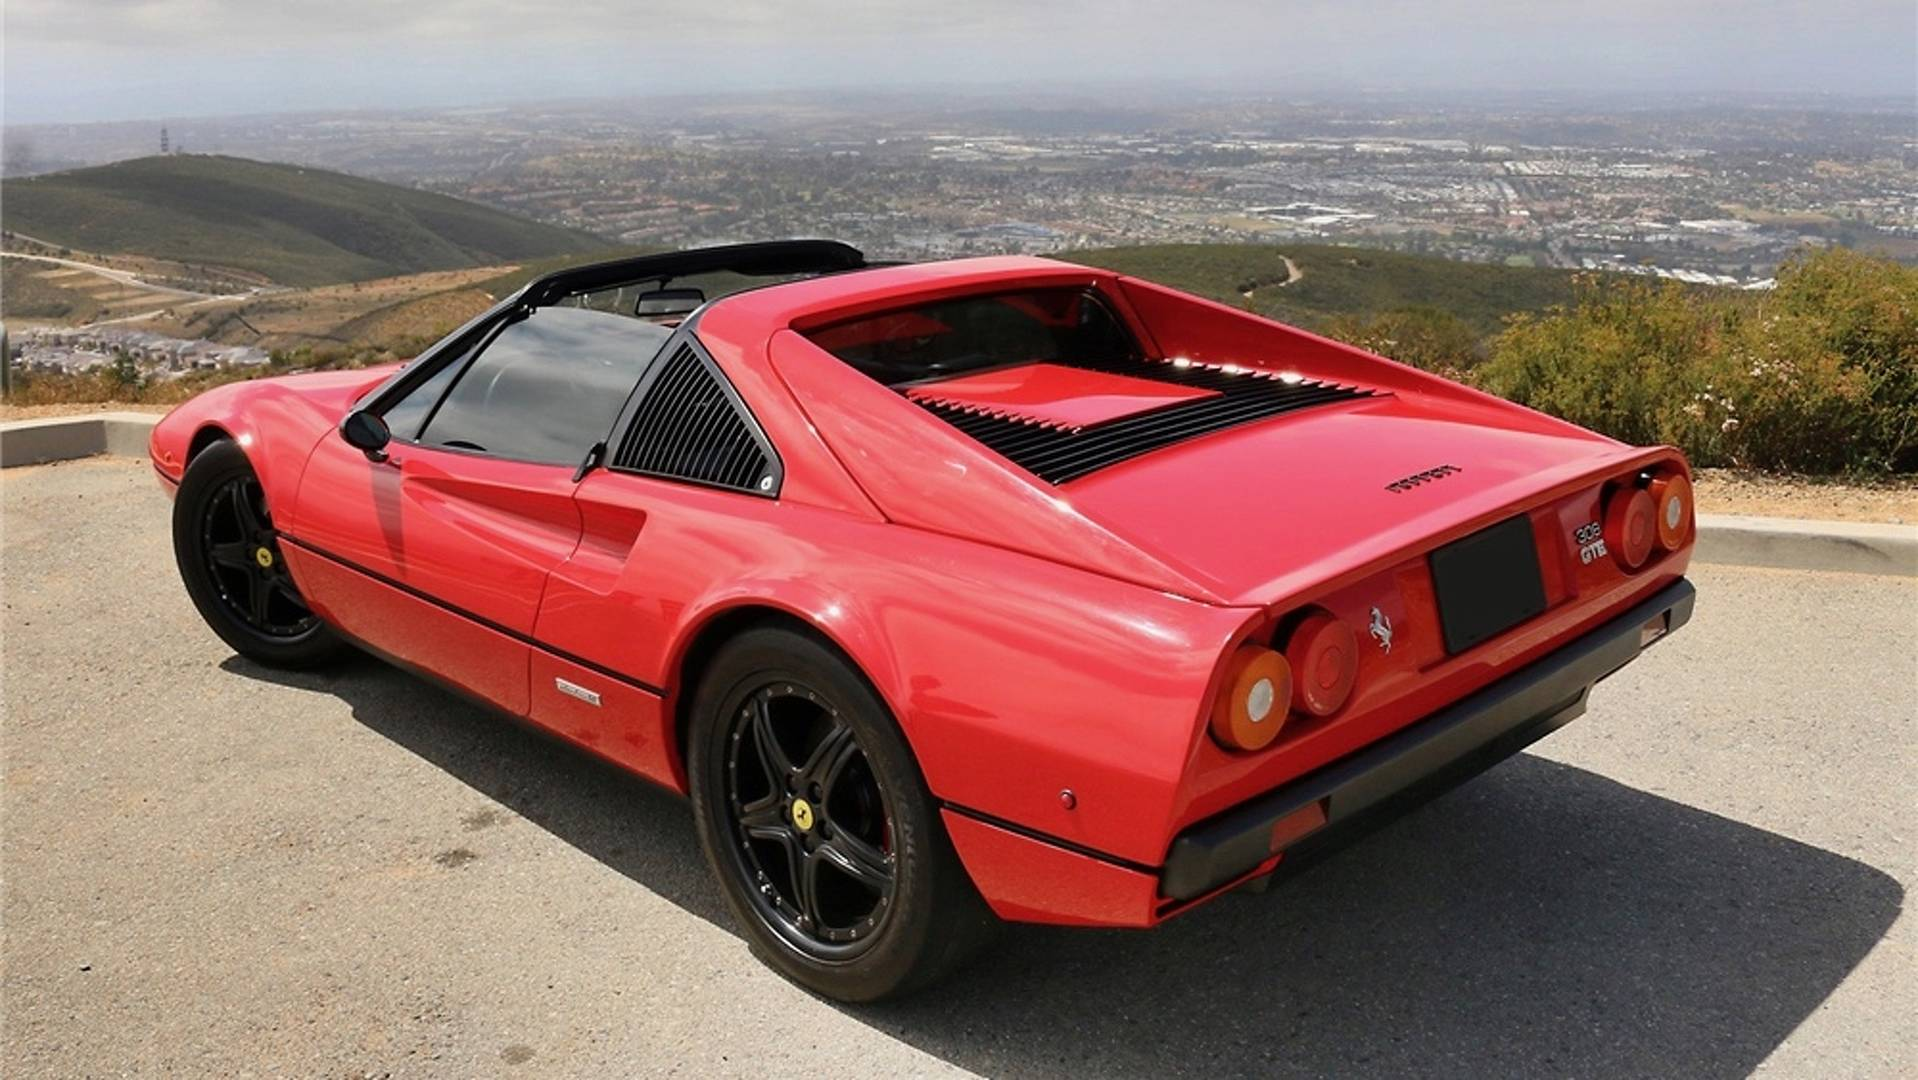 electrified-1976-ferrari-308-gts (3)